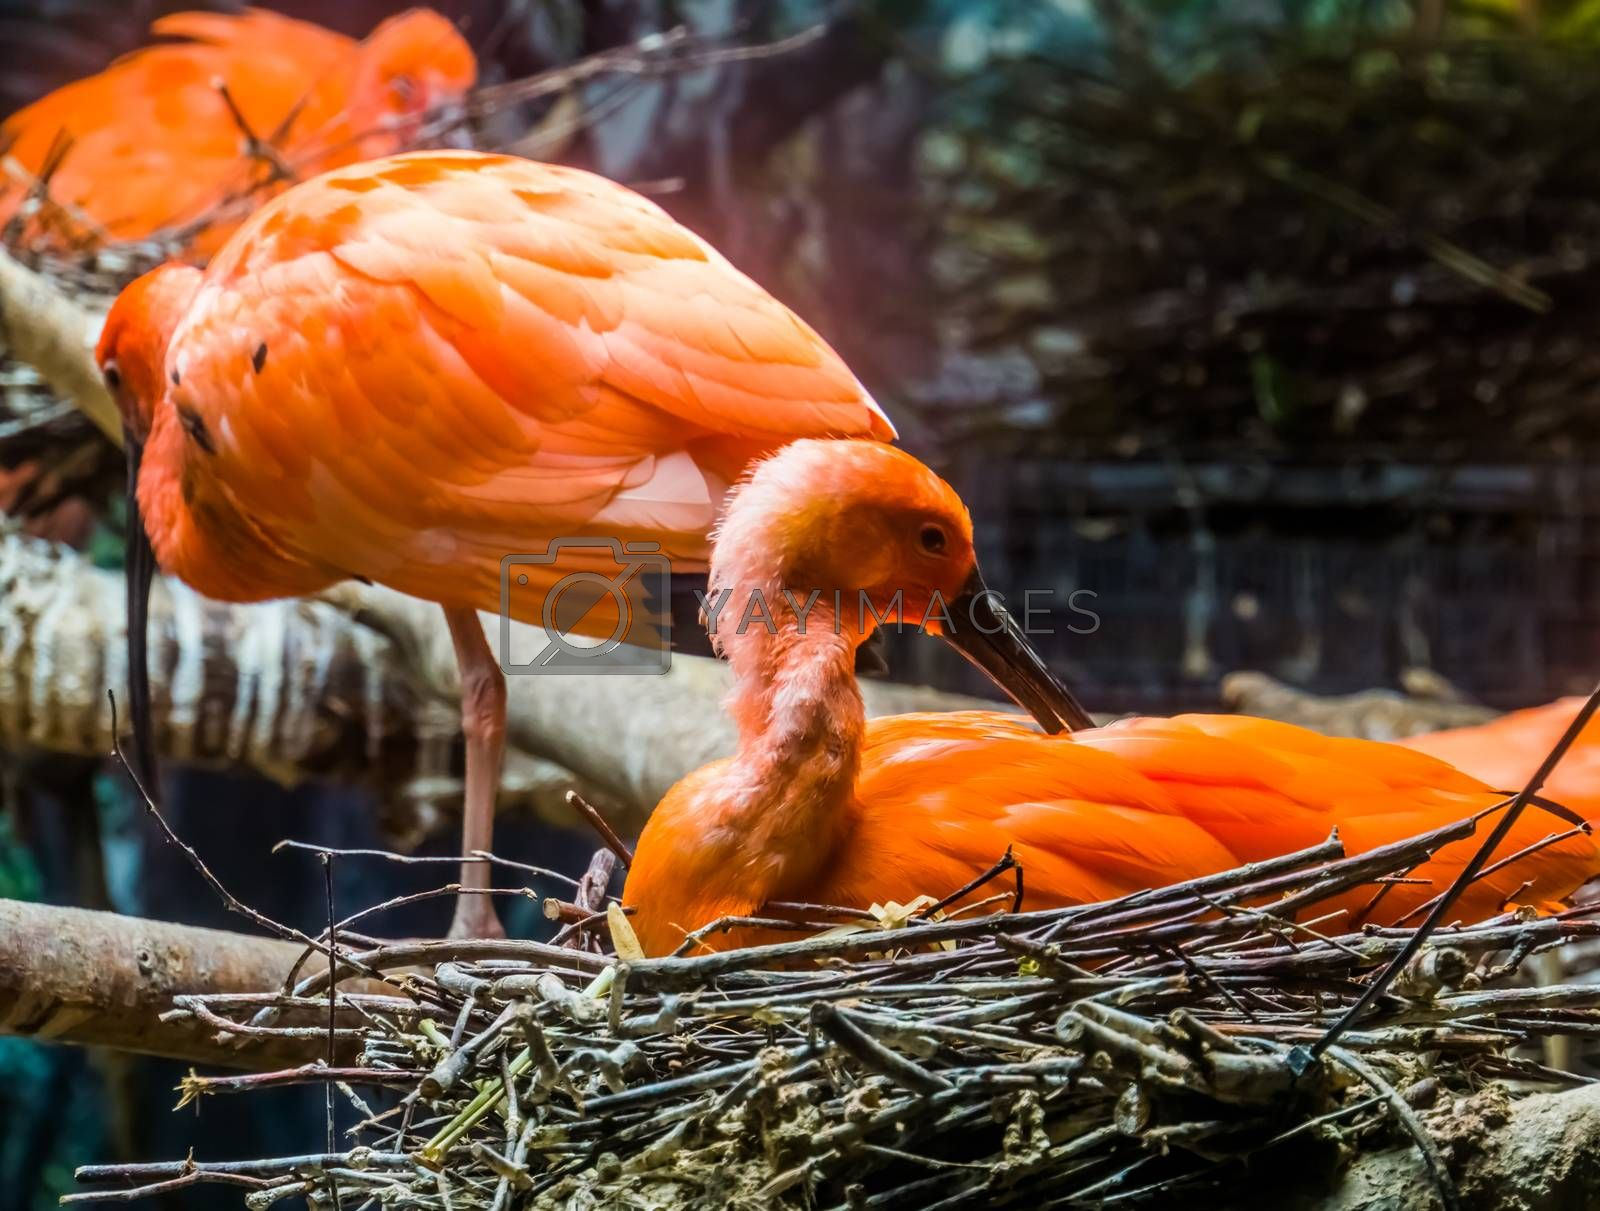 closeup of a red scarlet ibis sitting in its nest and preening its feathers, tropical bird portrait during breeding season